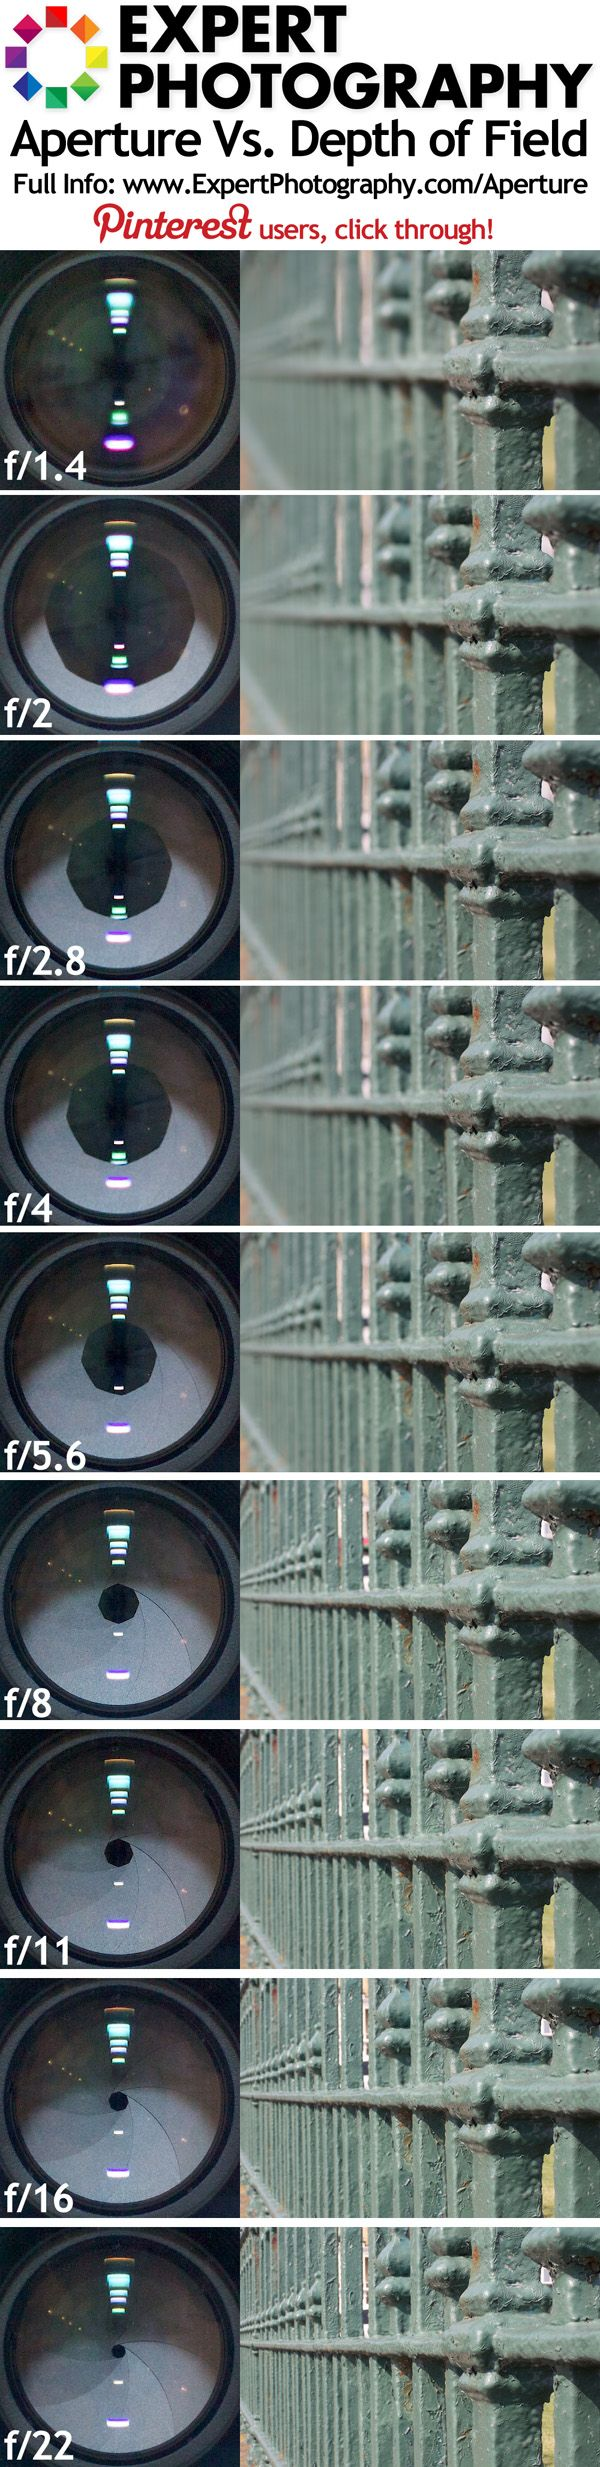 Aperture Vs. Depth of Field Visual